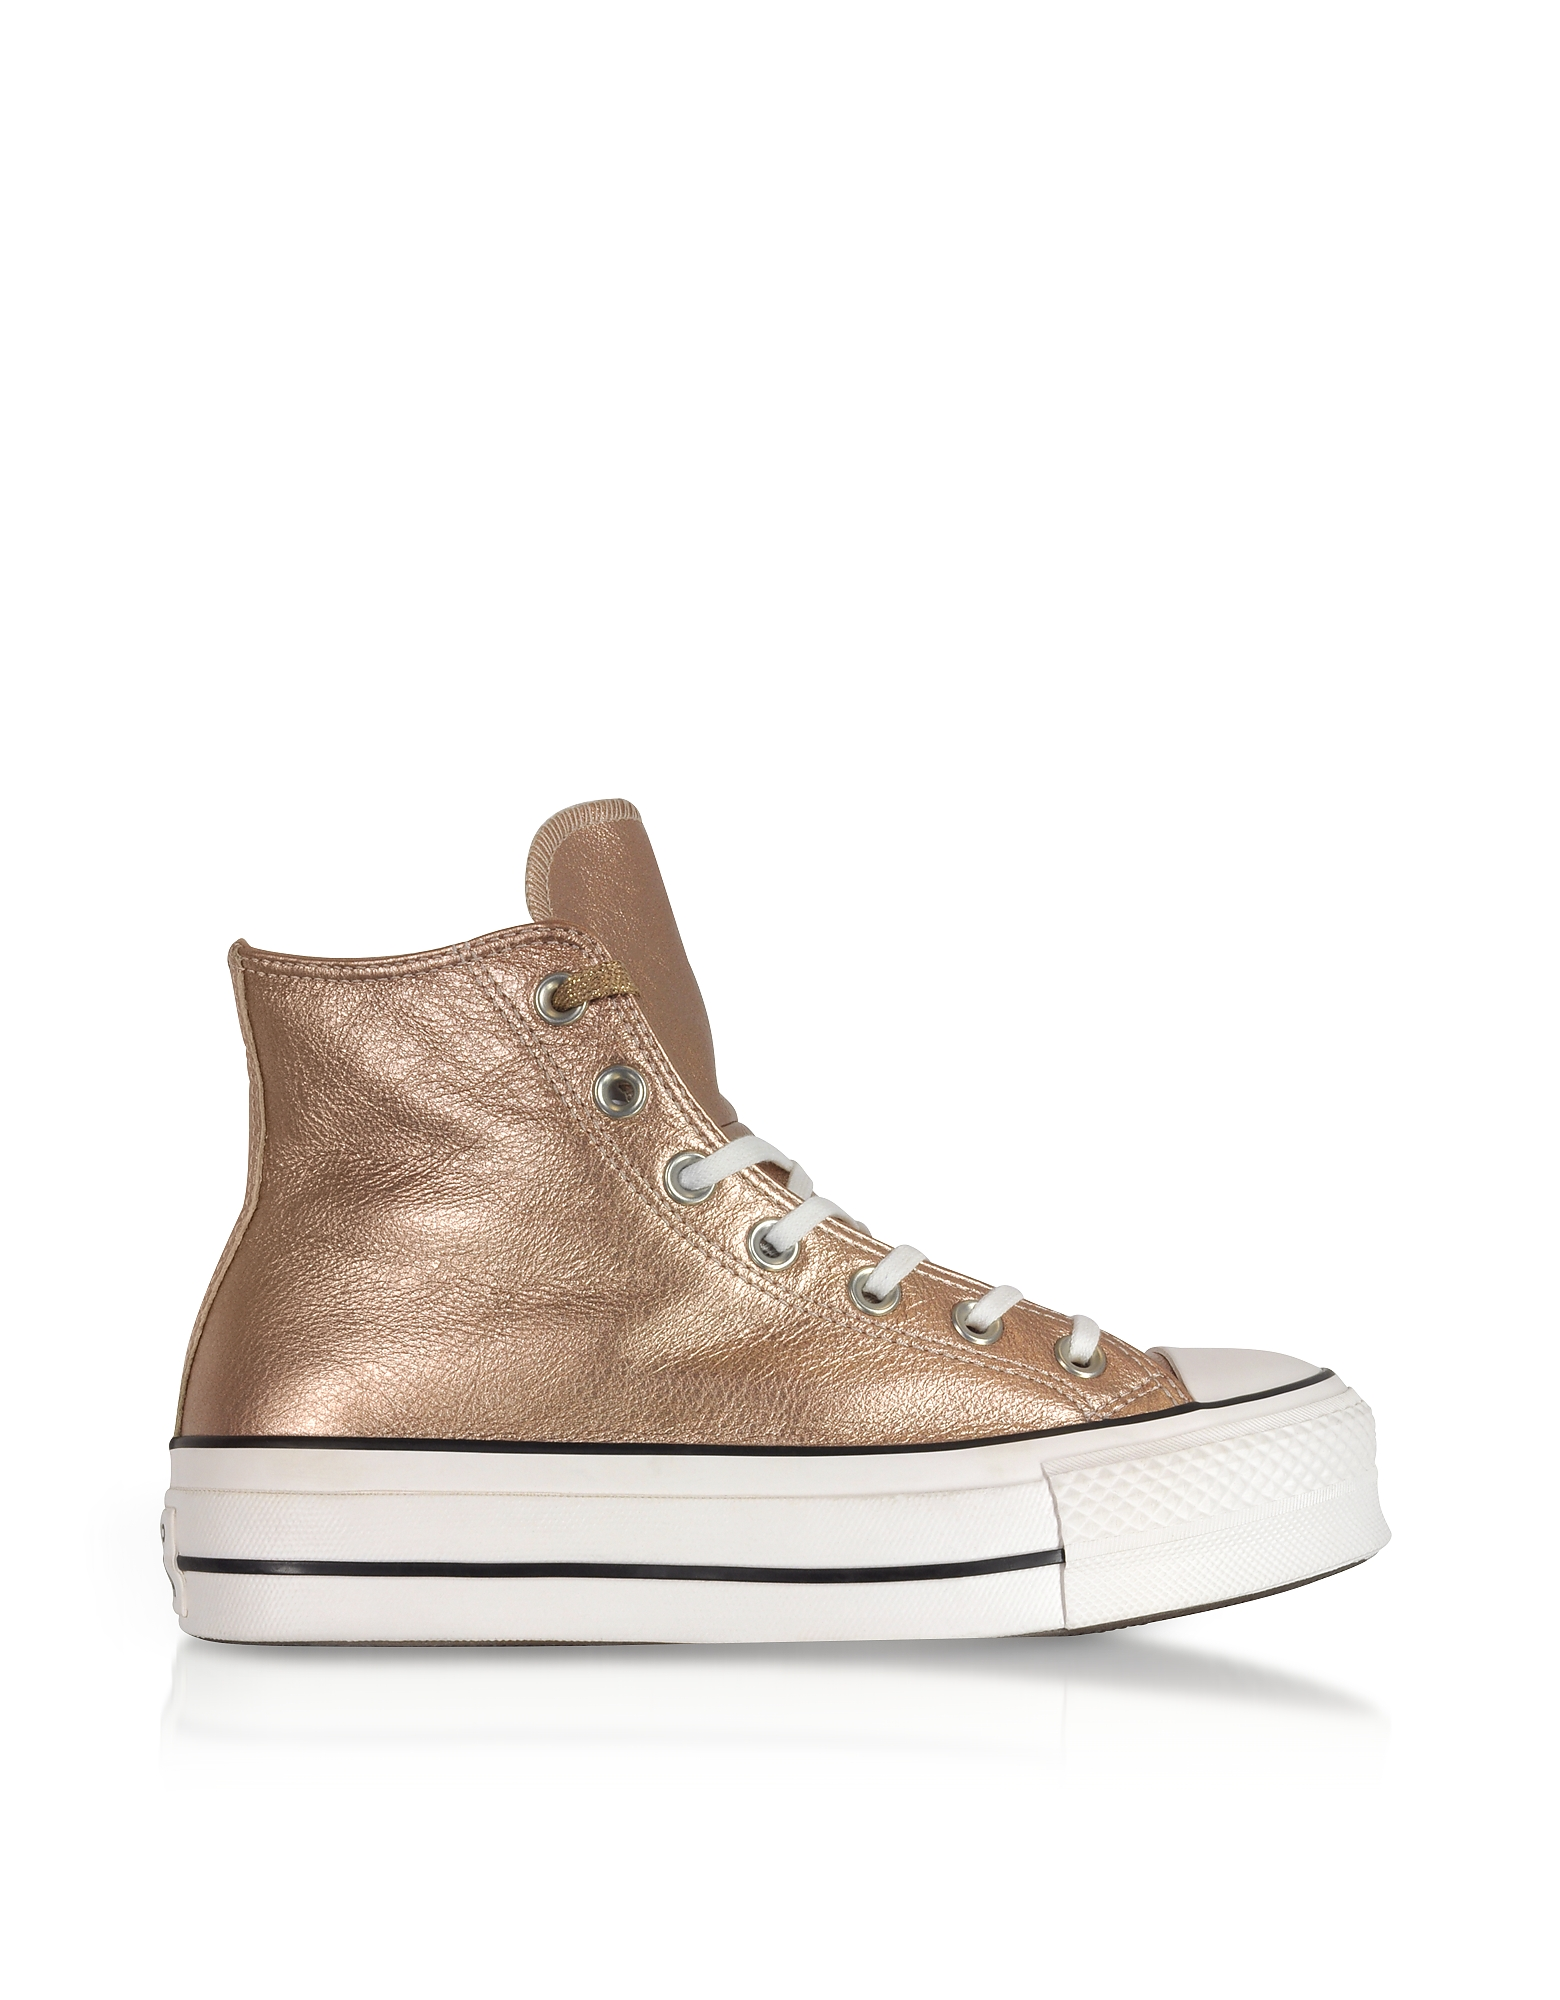 Chuck Taylor All Star High Flatform Sneakers in Canvas Metallizzato Taupe